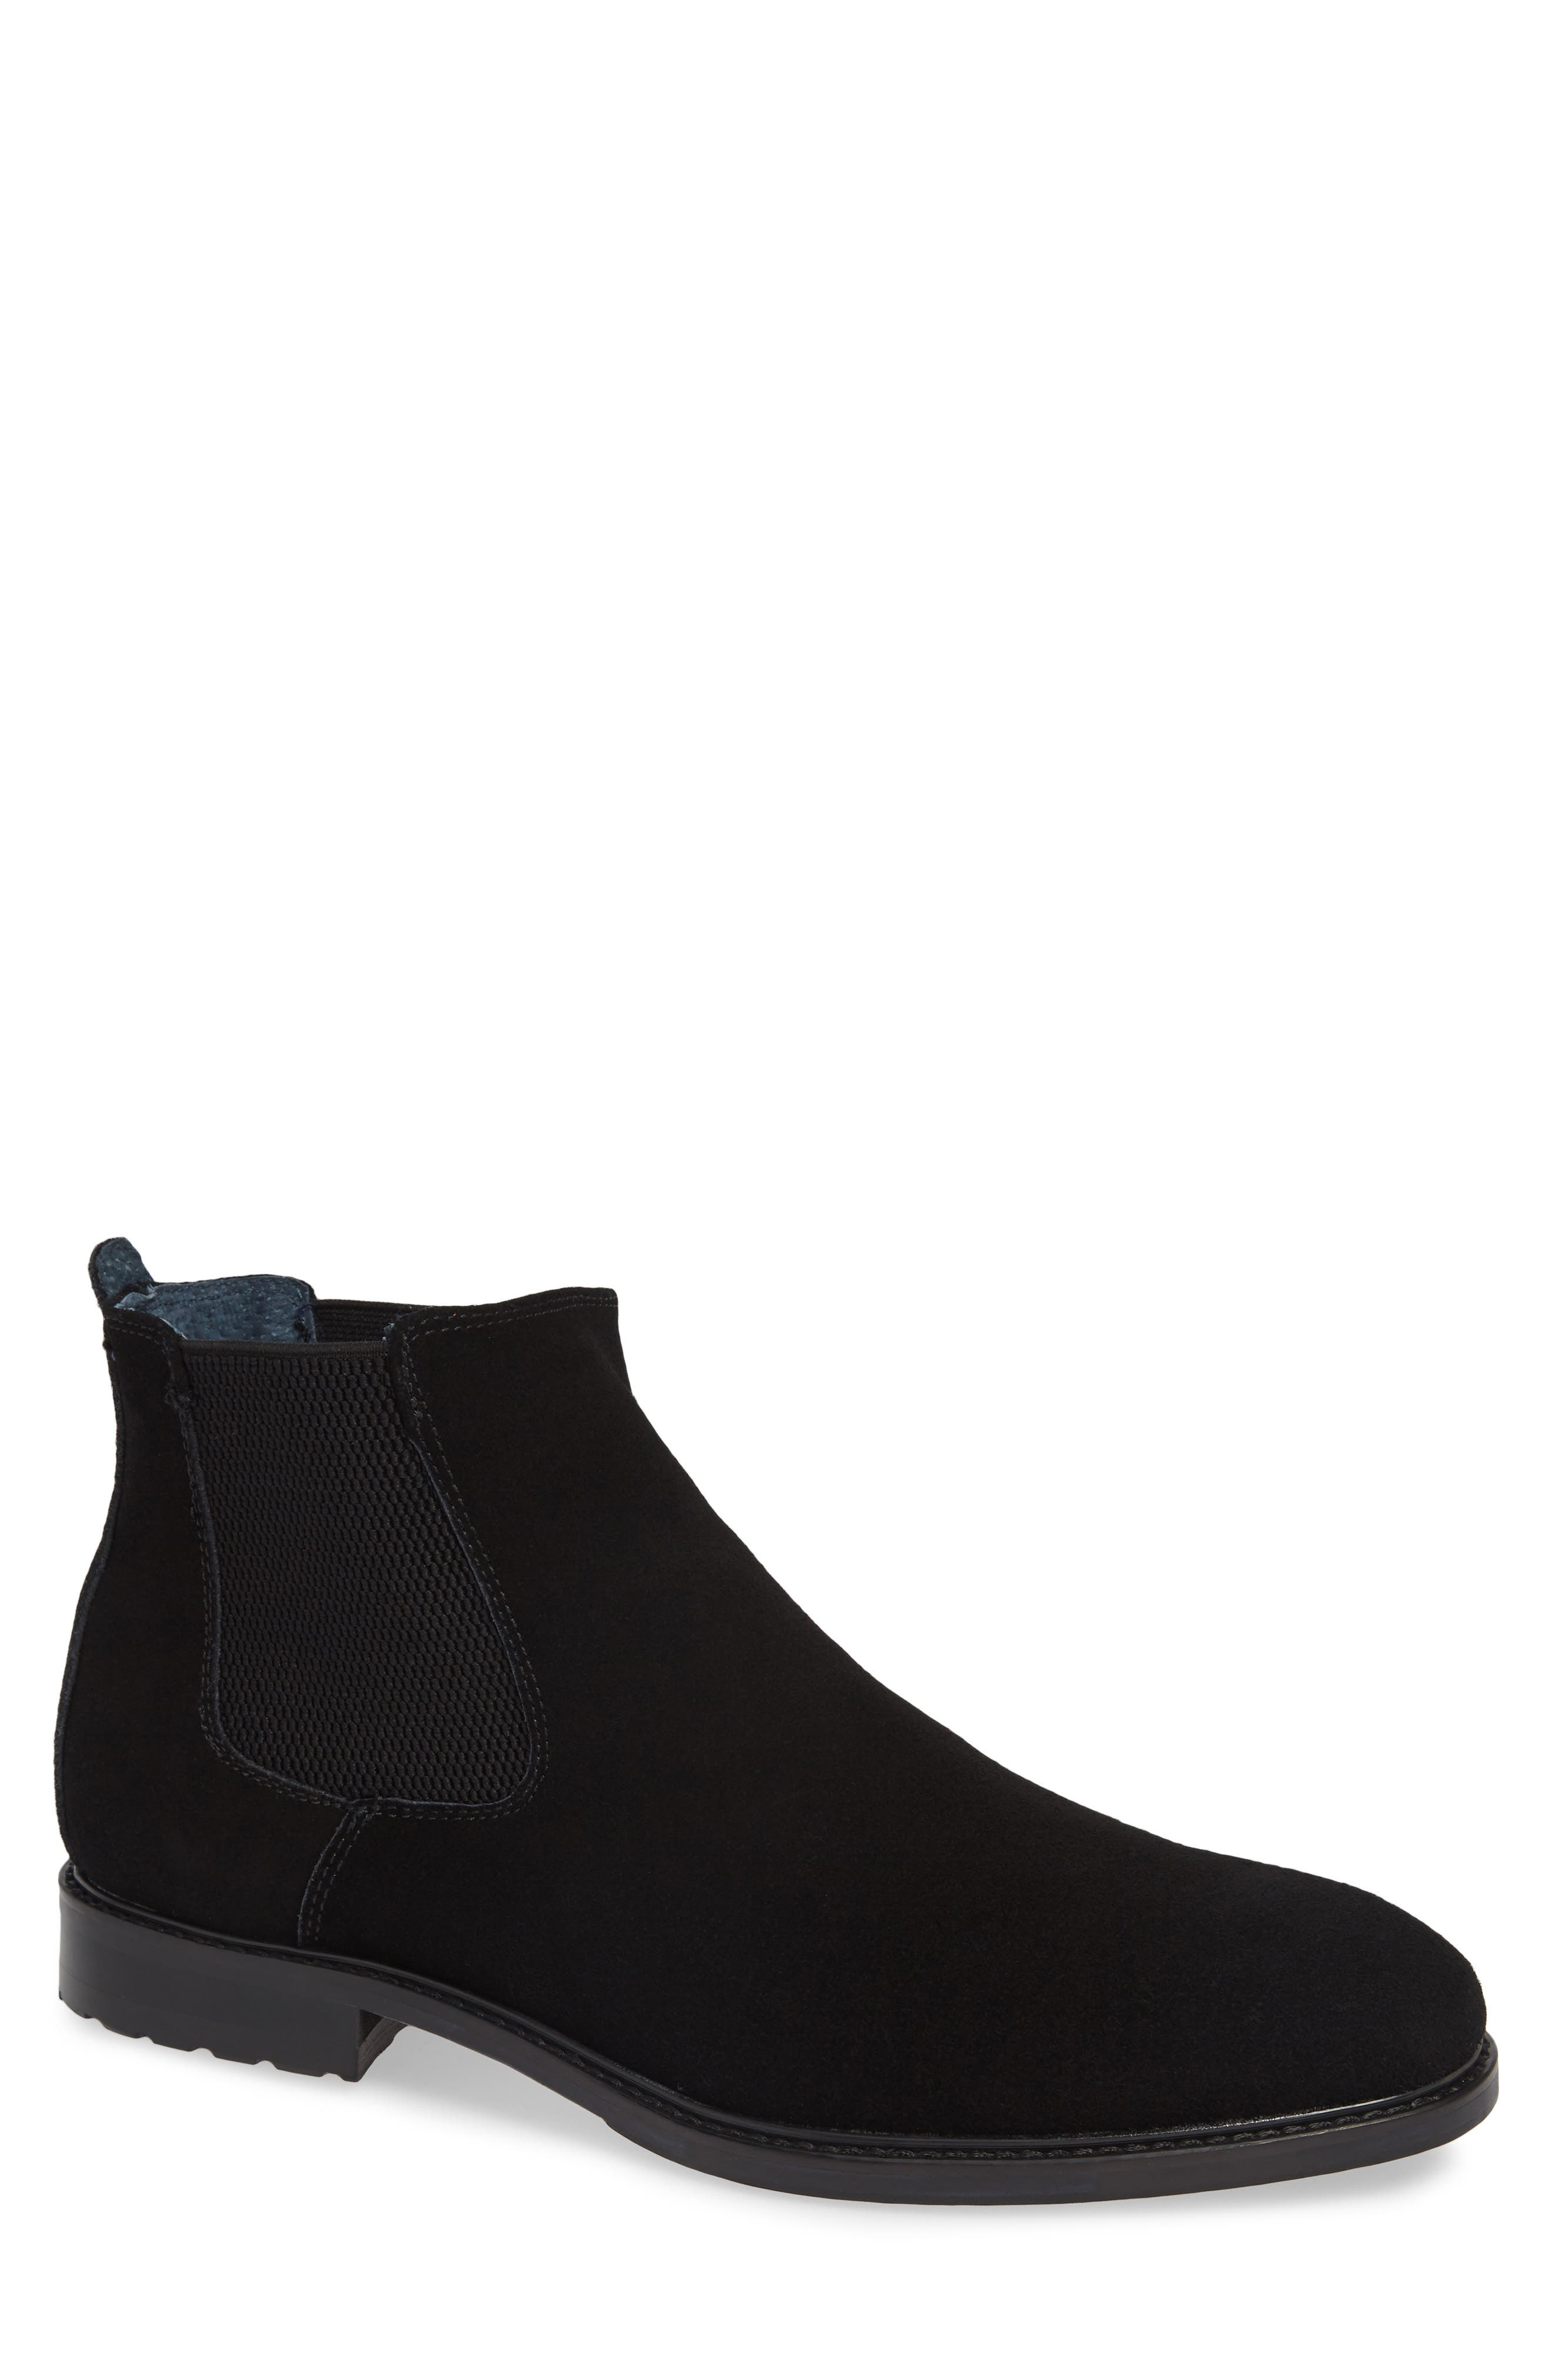 JUMP, Steyer Chelsea Boot, Main thumbnail 1, color, 009